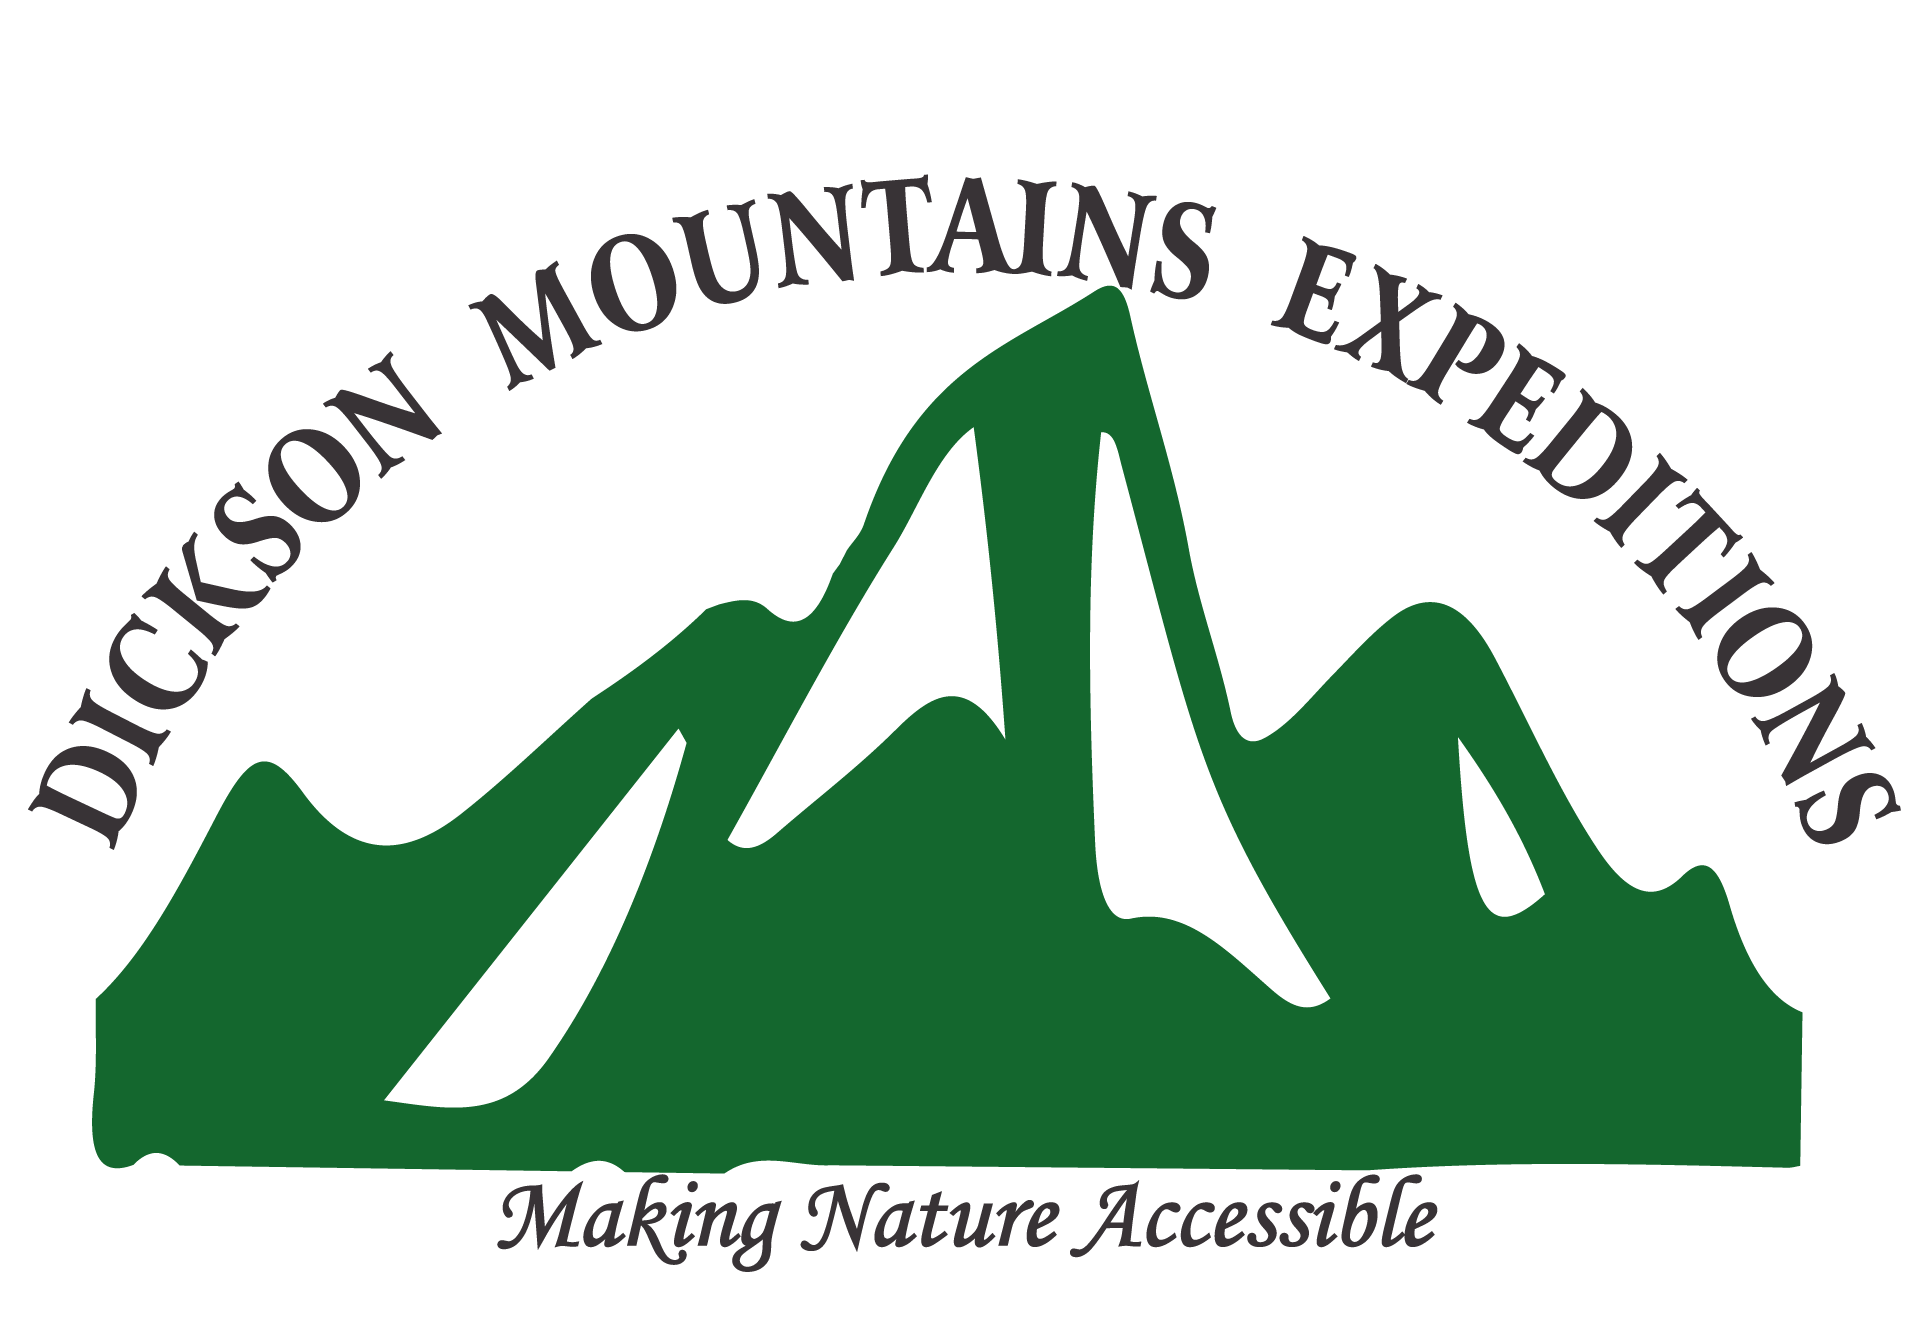 Dickson's Mountains Expeditions